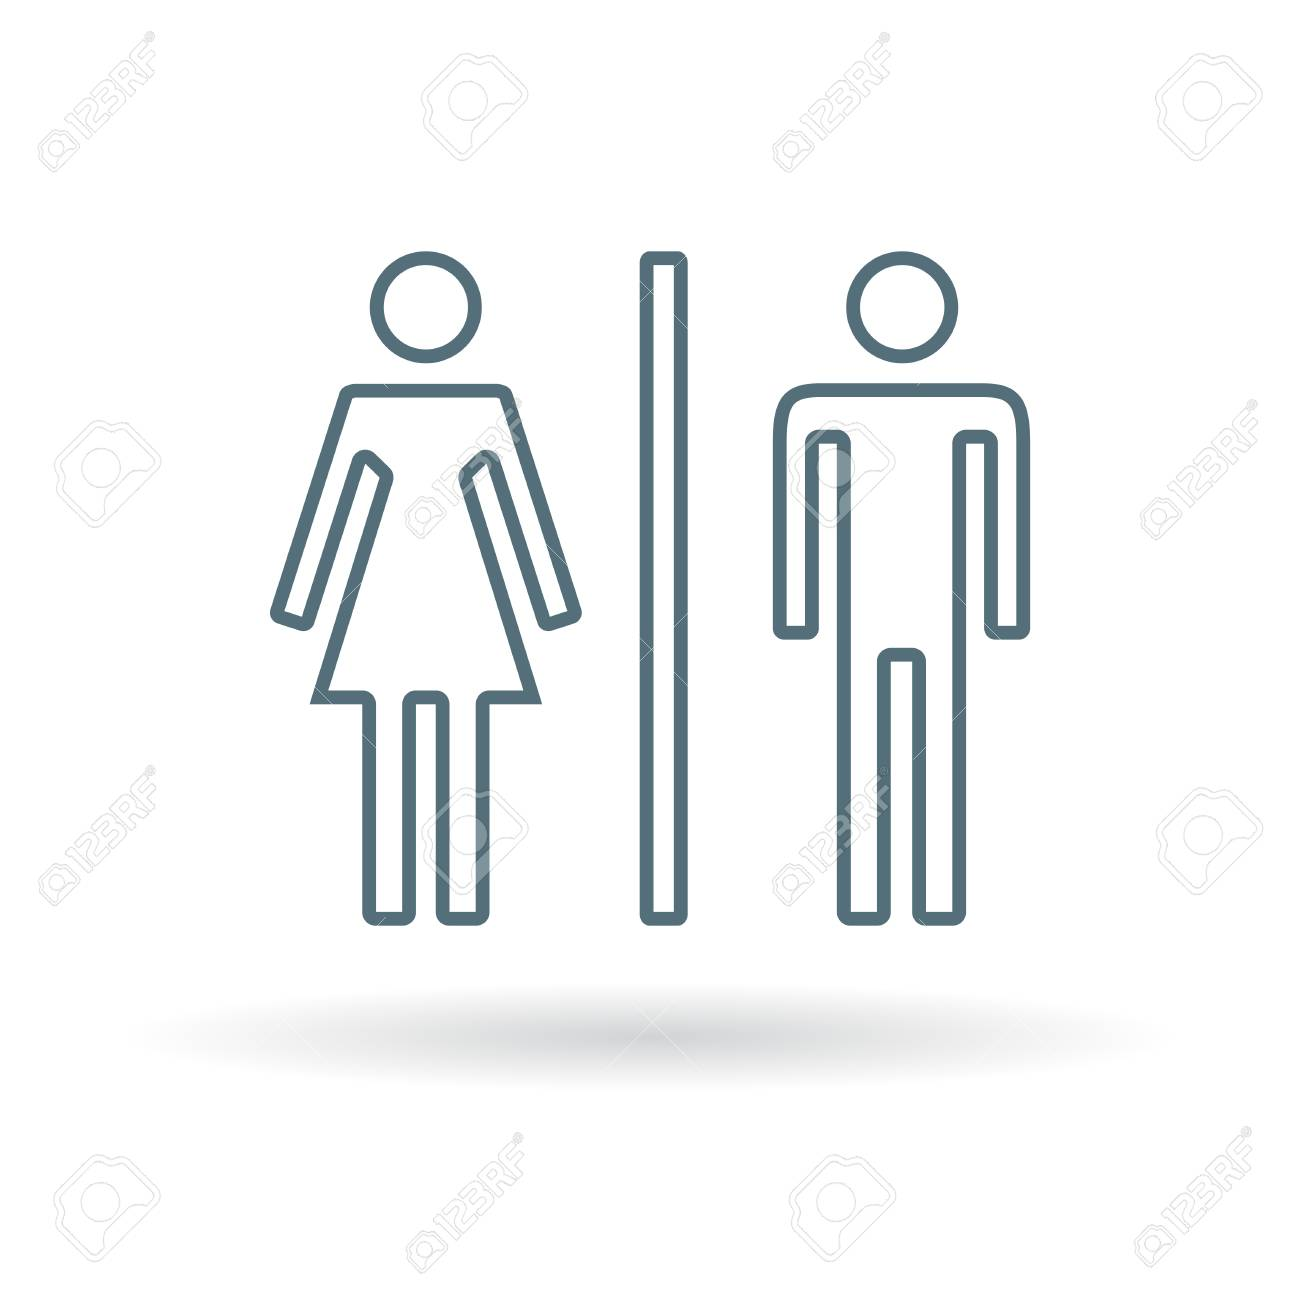 Male And Female Icon Male And Female Sign Male And Female Symbol